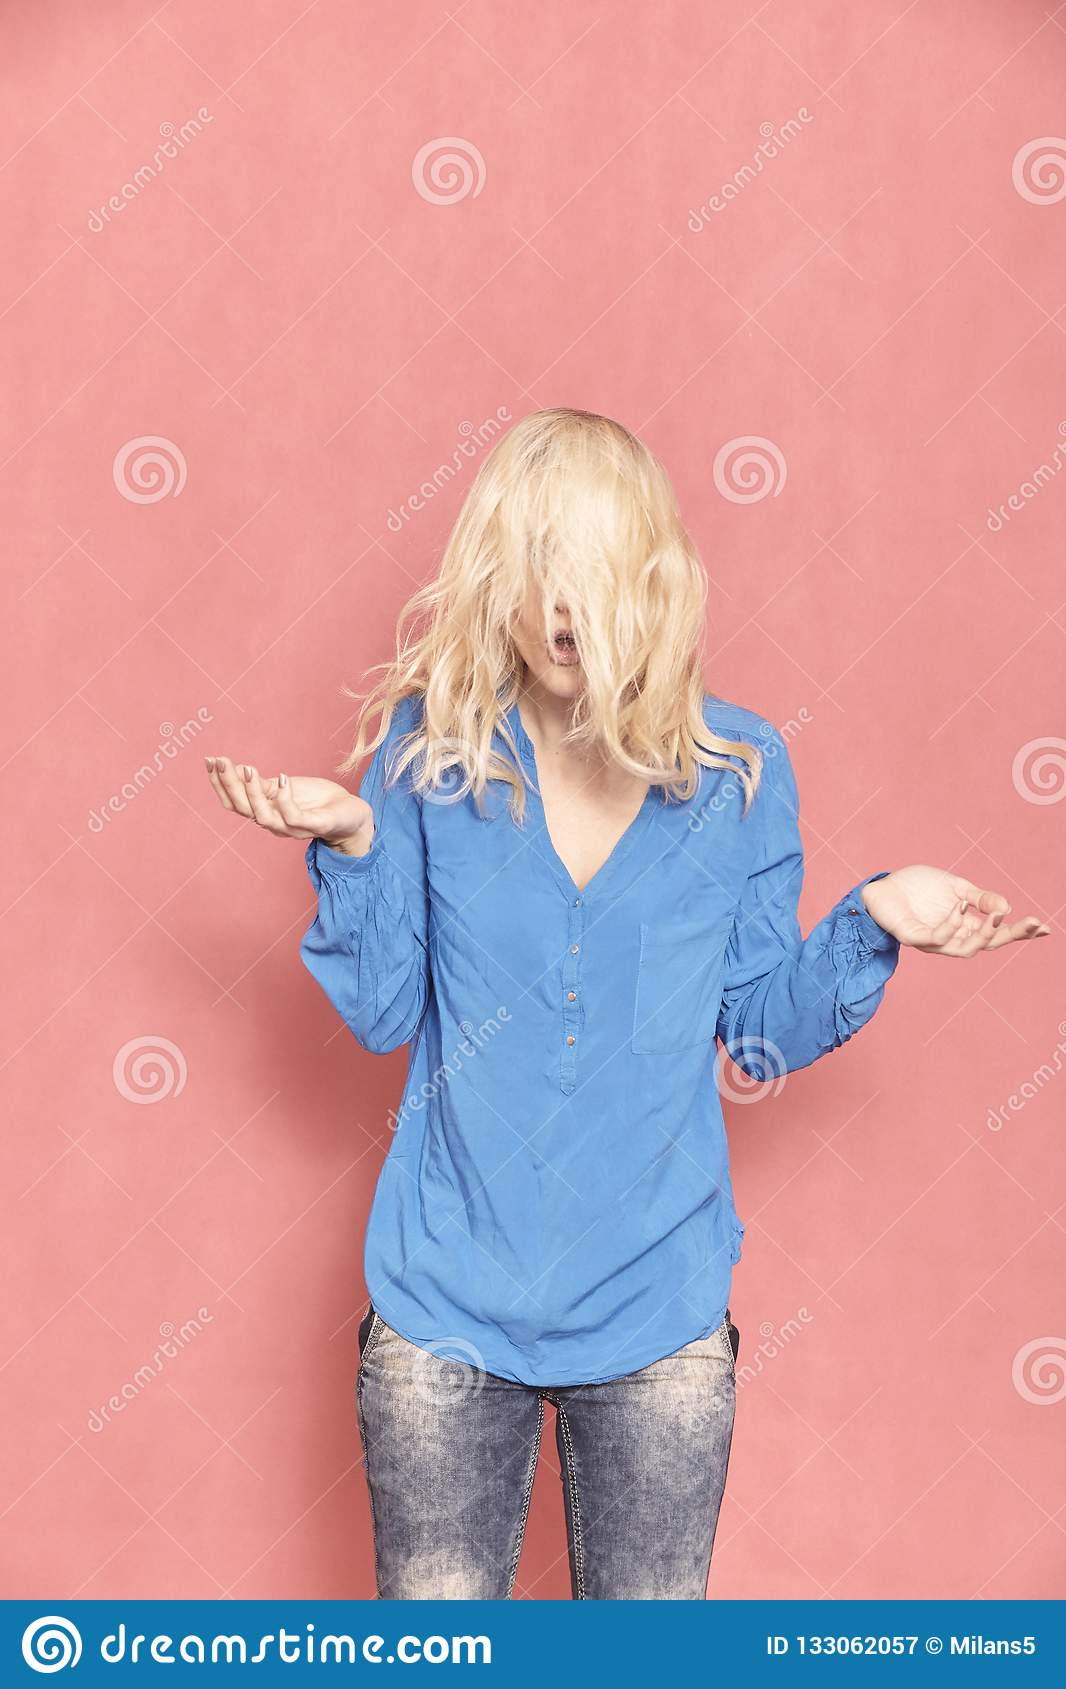 One young woman, 20-29 years old, messy chaotic long blond hair, almost hilarious since her face can `t be seen, arm`s raised in d